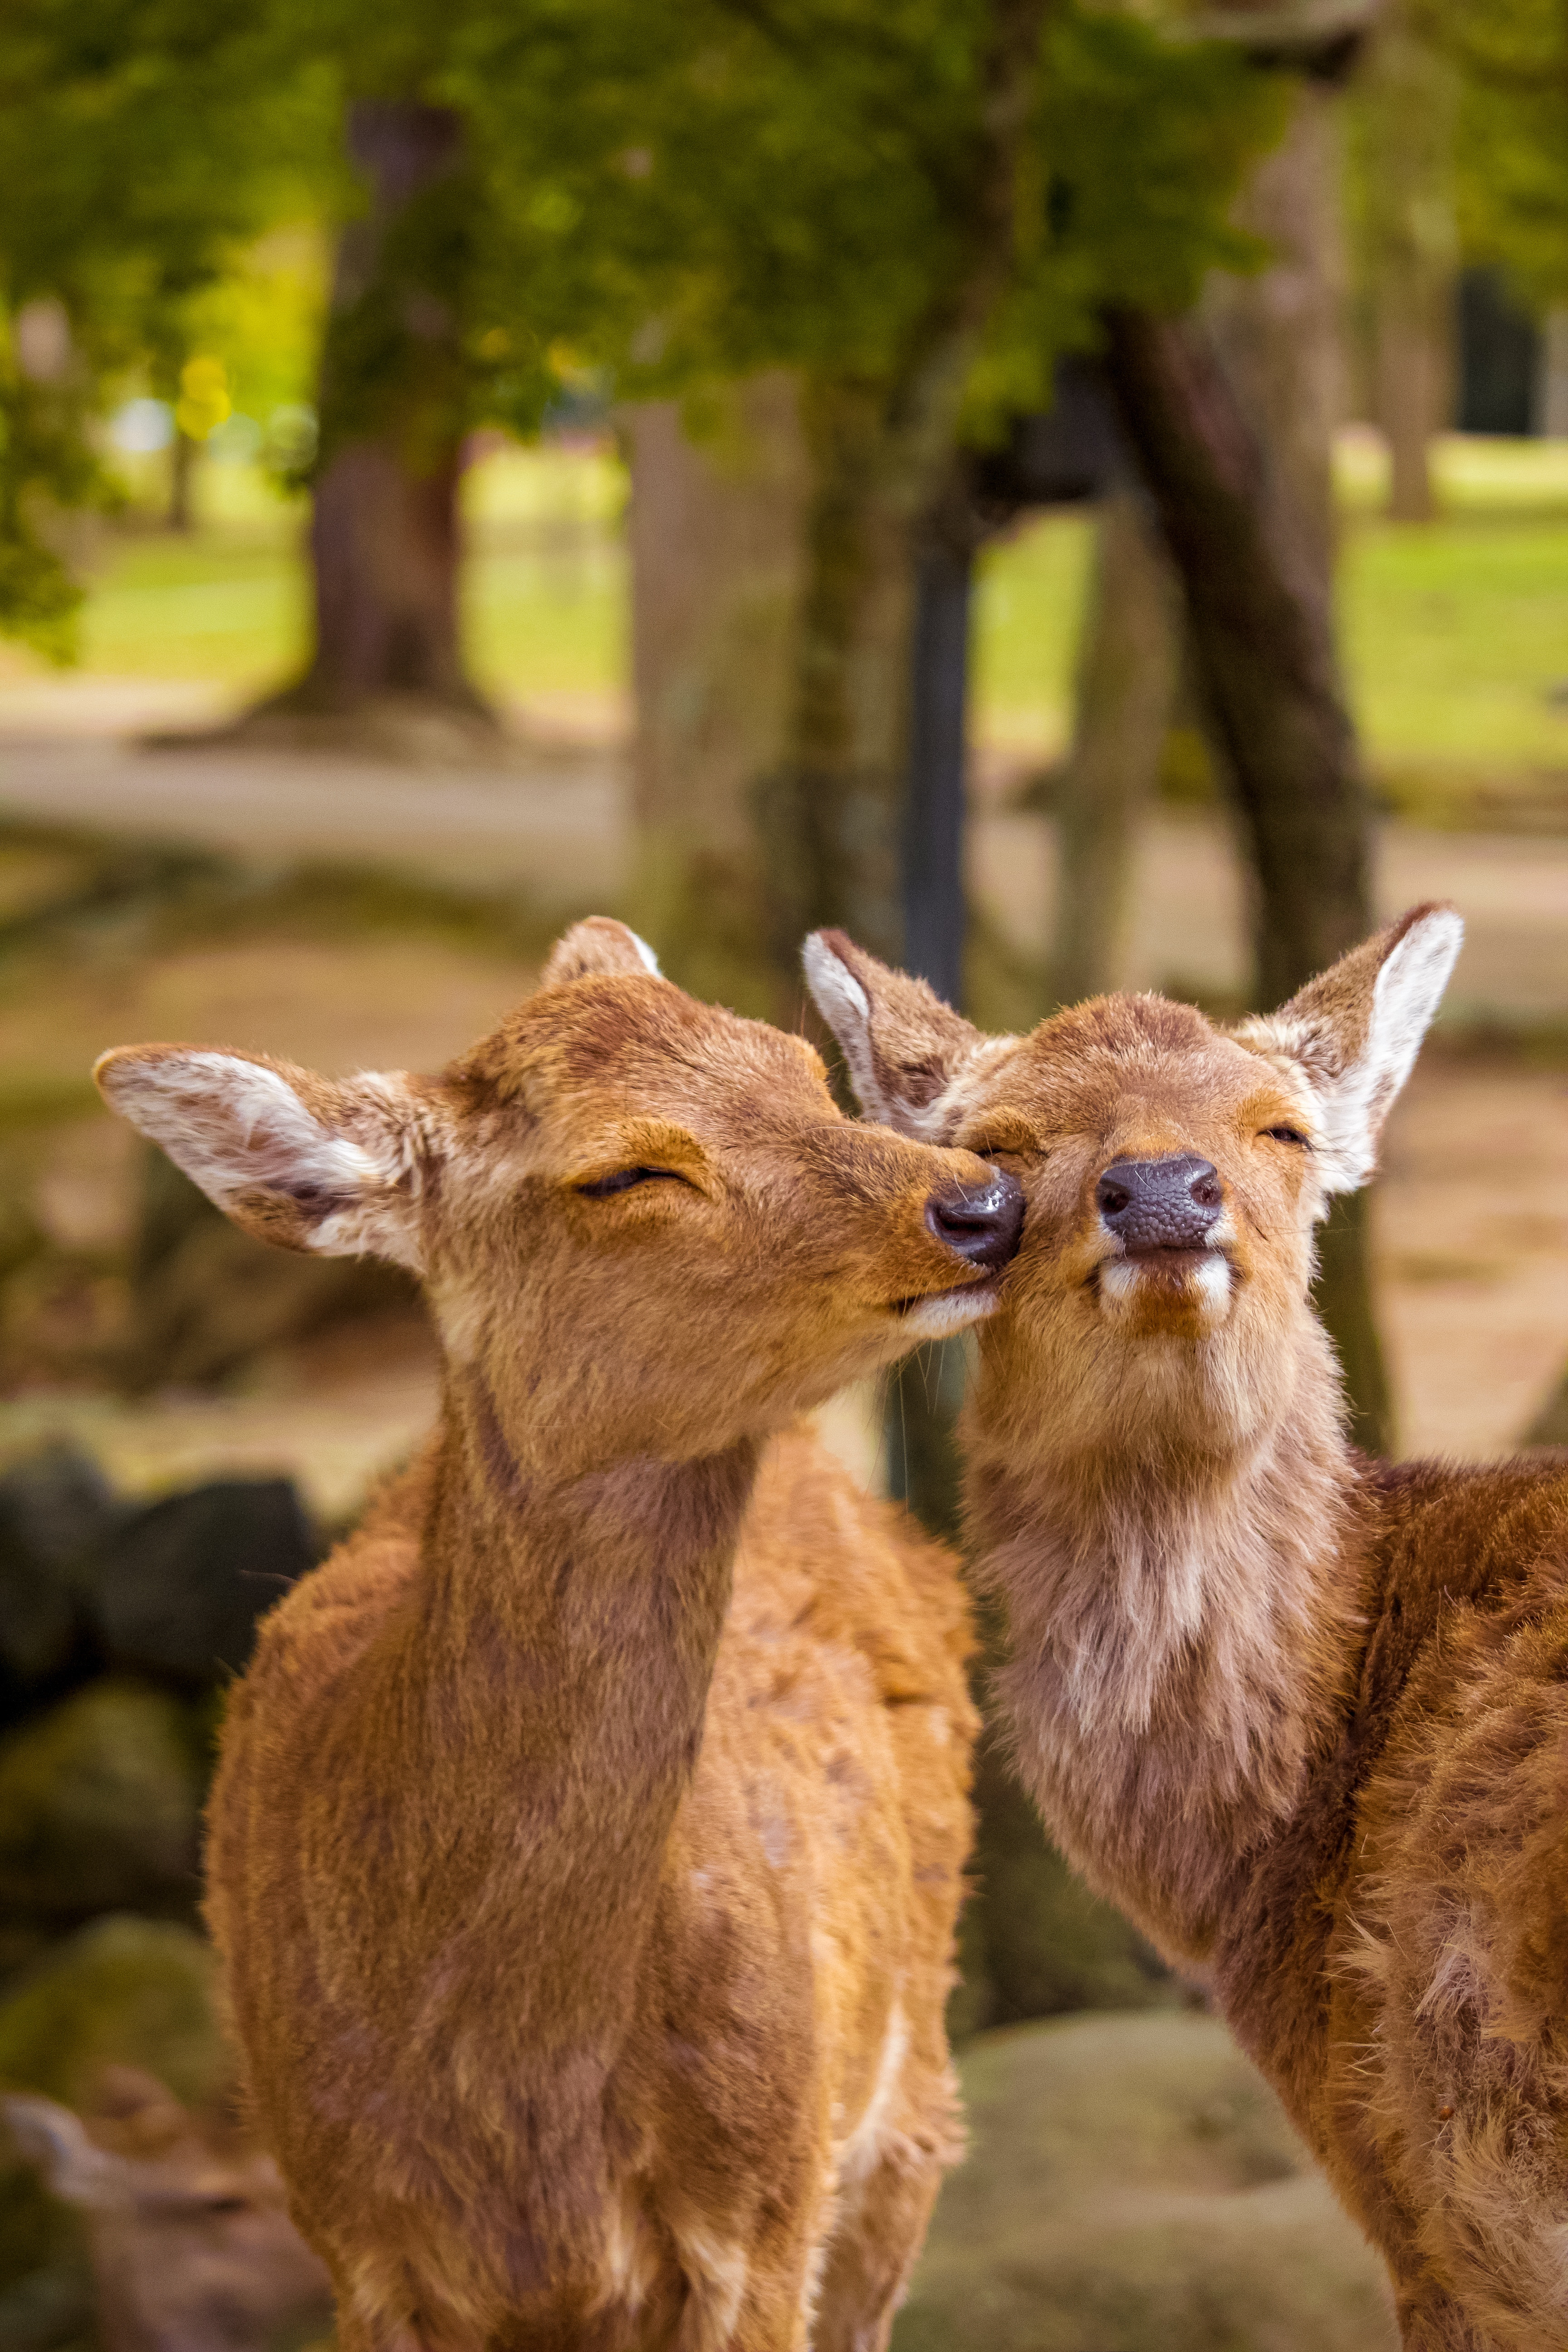 81193 download wallpaper Animals, Deers, Nice, Sweetheart, Funny, Wildlife screensavers and pictures for free